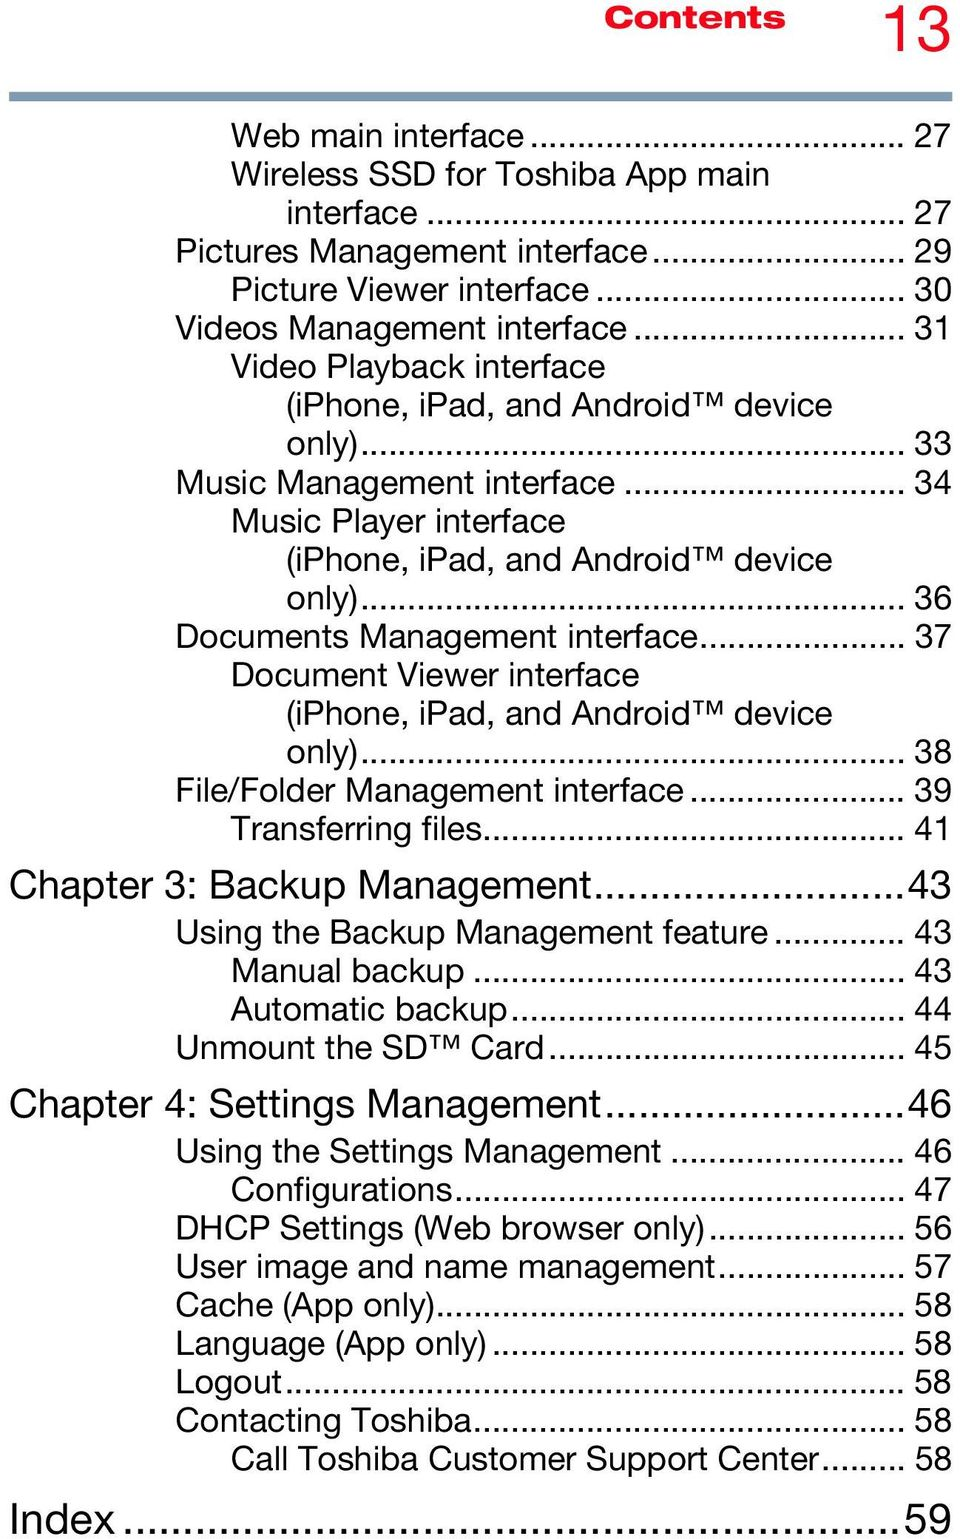 .. 36 Documents Management interface... 37 Document Viewer interface (iphone, ipad, and Android device only)... 38 File/Folder Management interface... 39 Transferring files.